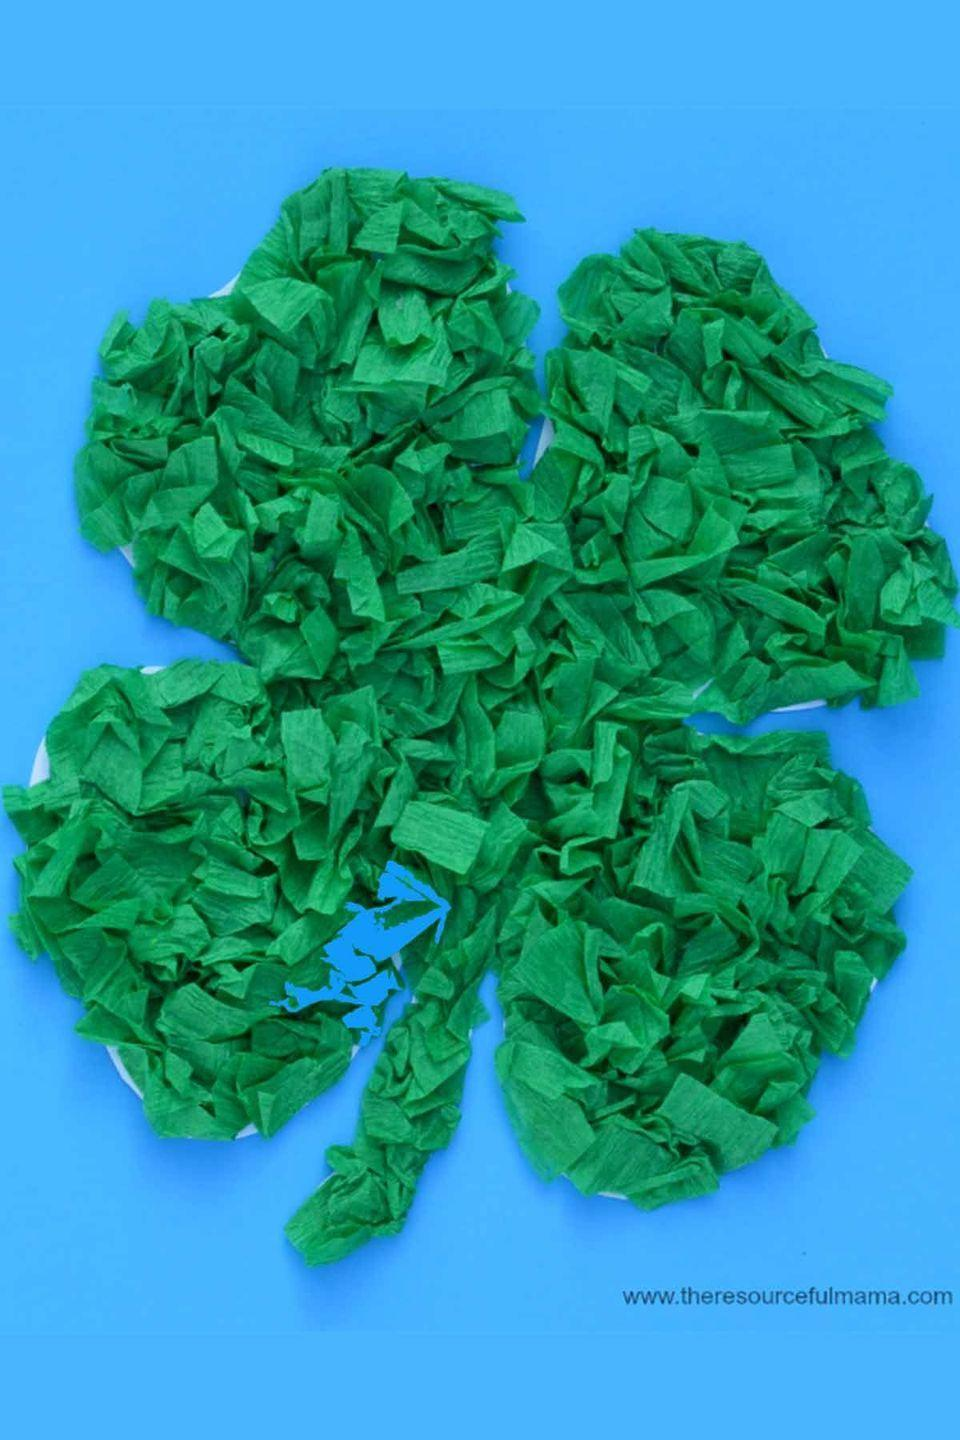 """<p>These cute clovers are easy enough for <a href=""""https://www.womansday.com/home/crafts-projects/"""" rel=""""nofollow noopener"""" target=""""_blank"""" data-ylk=""""slk:preschoolers to tackle."""" class=""""link rapid-noclick-resp"""">preschoolers to tackle.</a></p><p><em>Get the tutorial at <a href=""""http://www.theresourcefulmama.com/crepe-paper-shamrock-st-patricks-day-kid-craft/"""" rel=""""nofollow noopener"""" target=""""_blank"""" data-ylk=""""slk:The Resourceful Mama"""" class=""""link rapid-noclick-resp"""">The Resourceful Mama</a>.</em> </p>"""